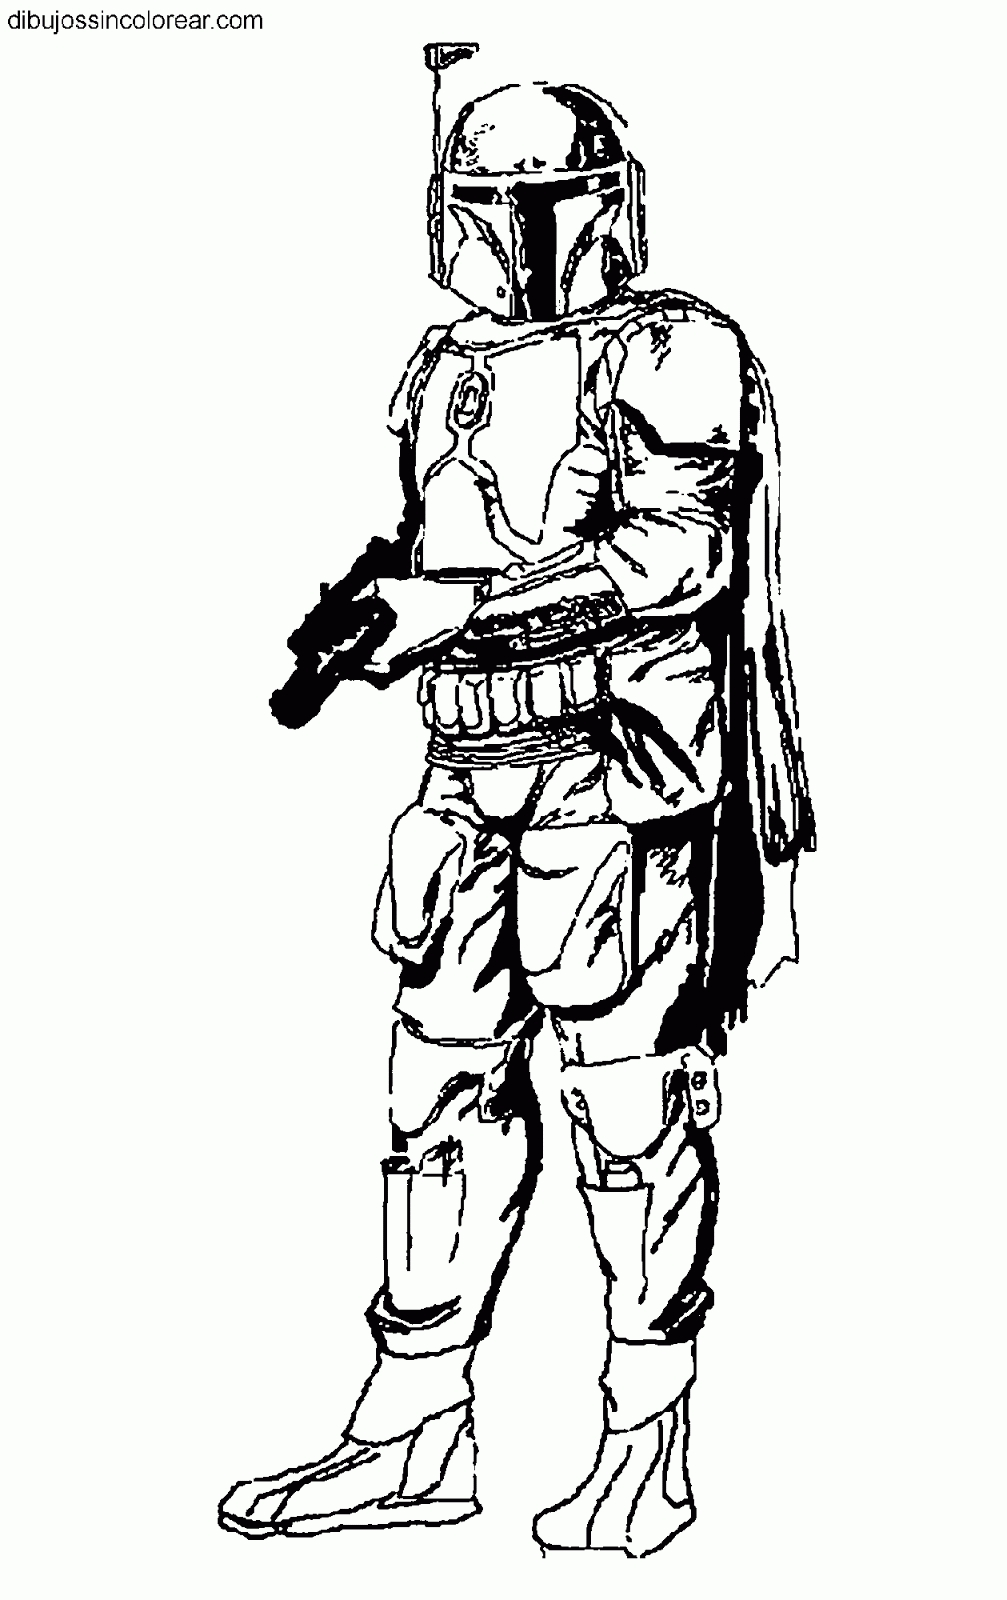 Rogue One Coloring Pages - Dibujos Sin Colorear Dibujos De Boba Fett Star Wars La